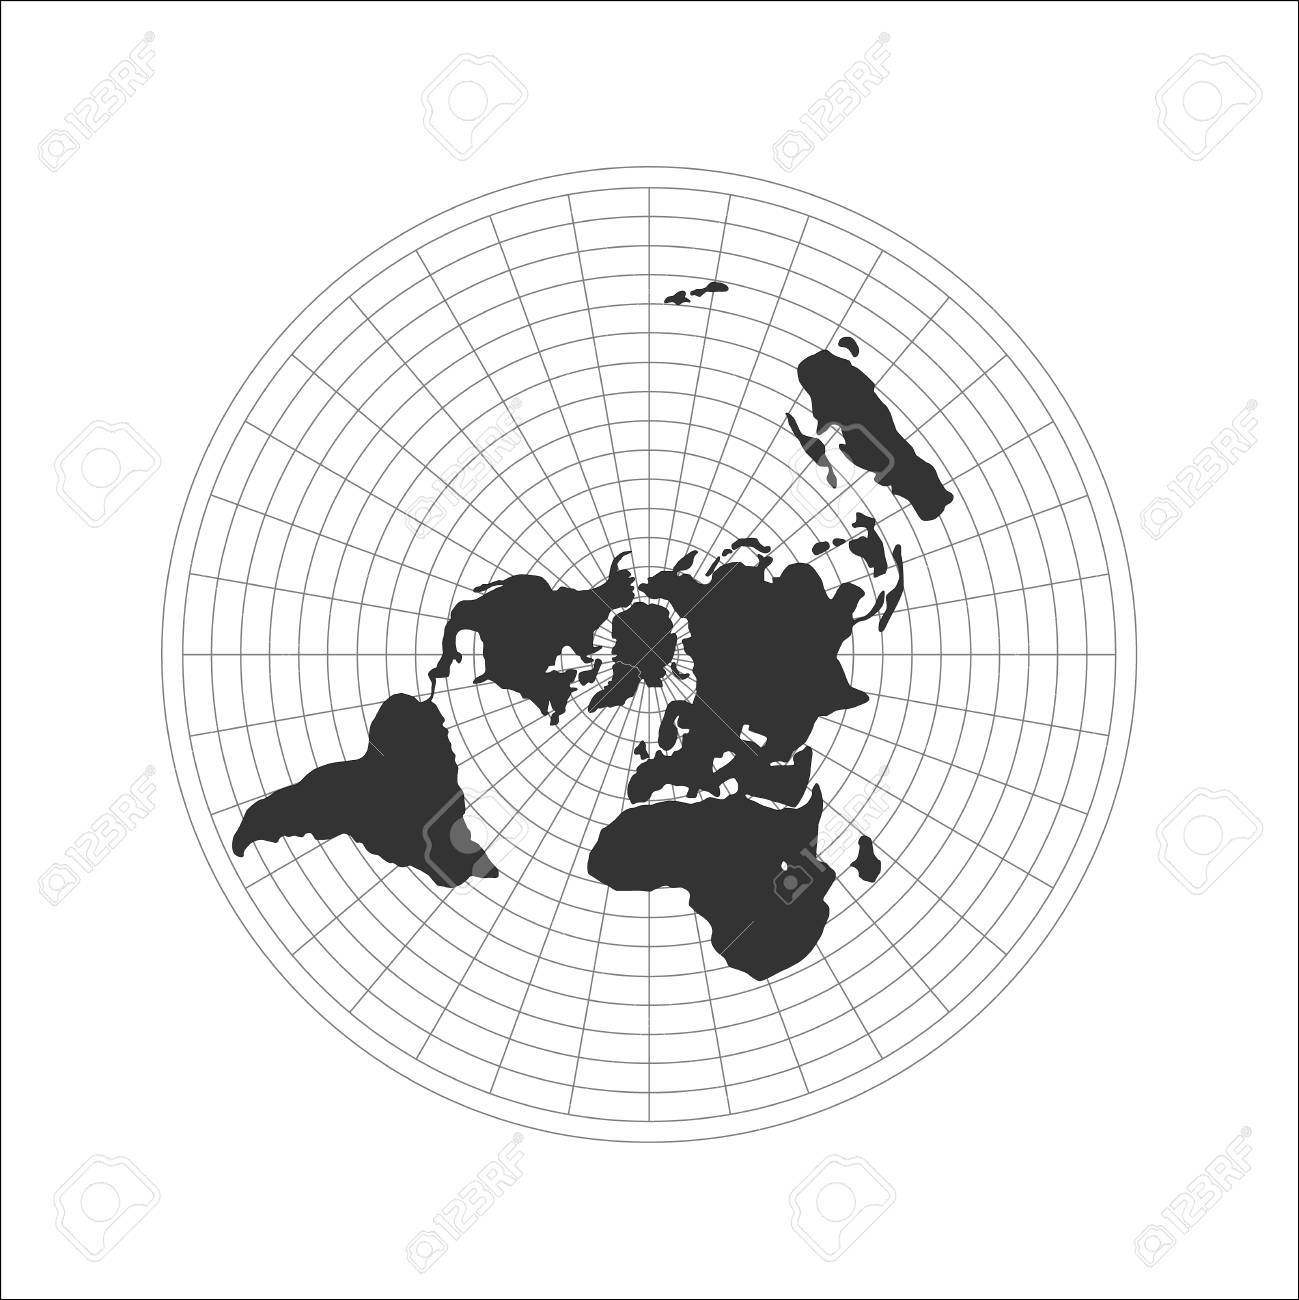 Flat earth map logo vector illustration royalty free cliparts flat earth map logo vector illustration stock vector 81294576 gumiabroncs Image collections